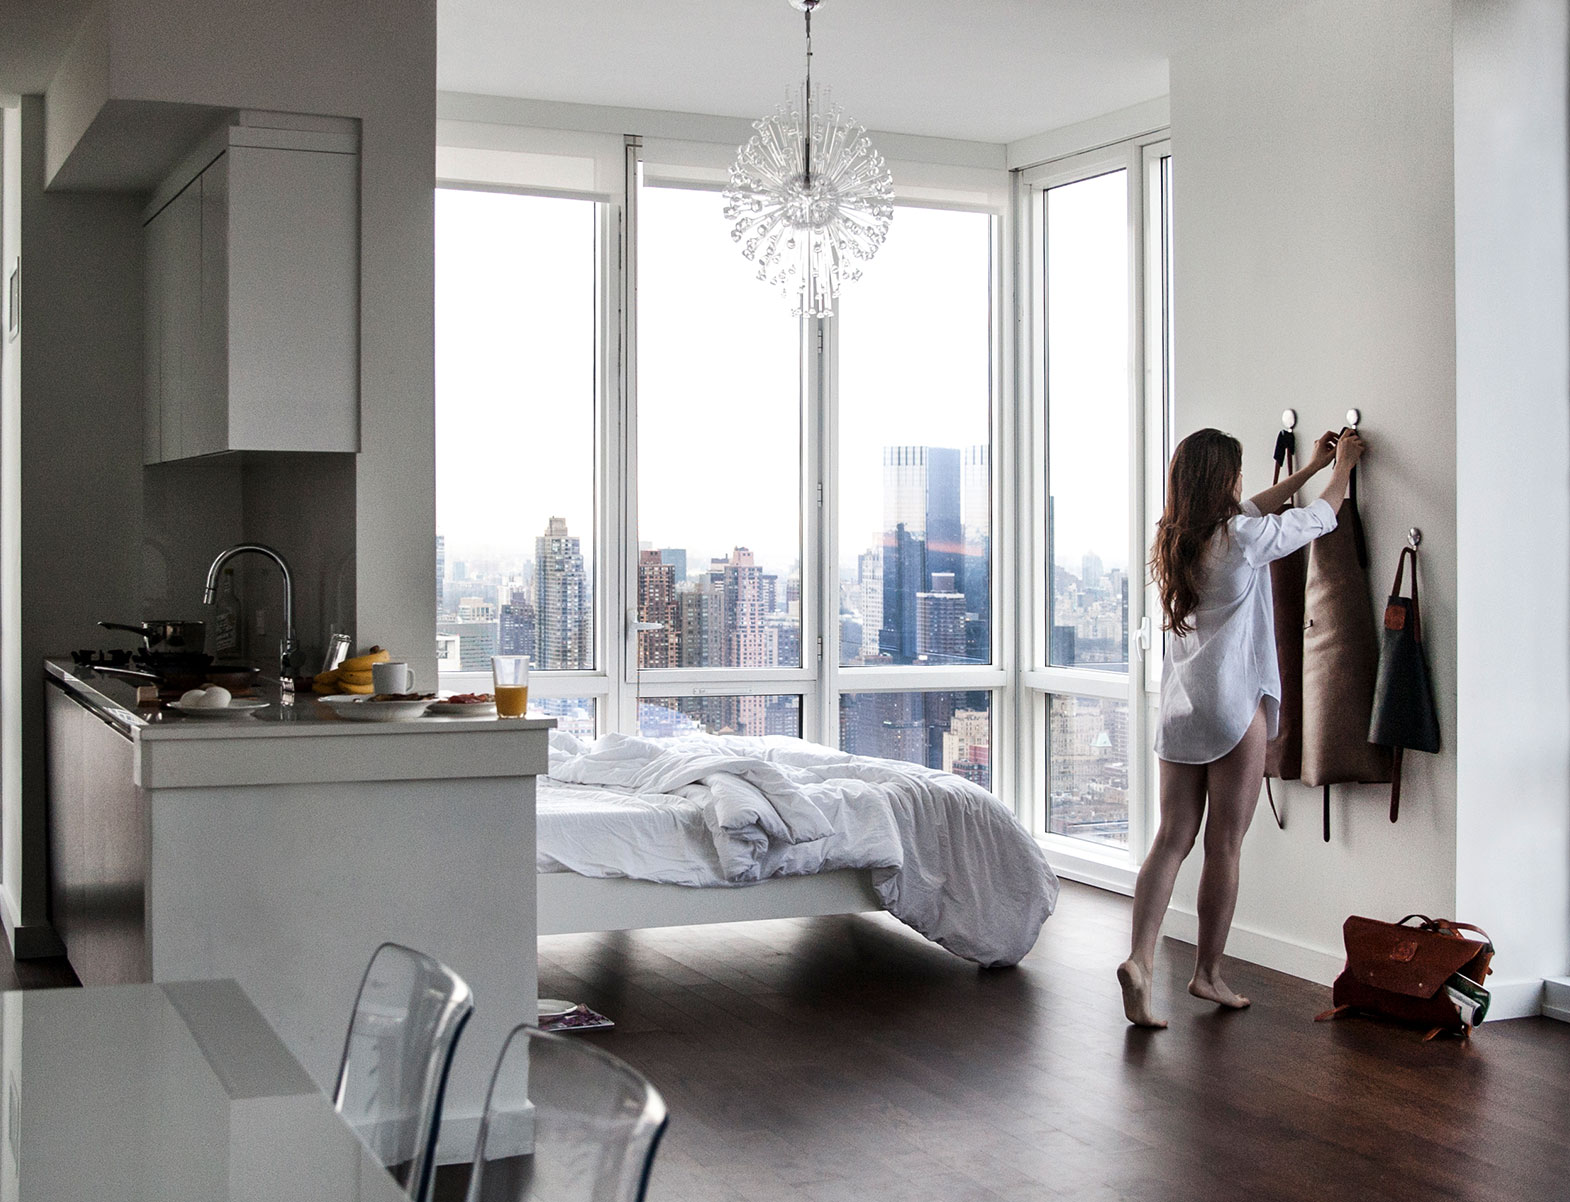 WITLOFT Penthouse in NYC Story woman hanging the aprons